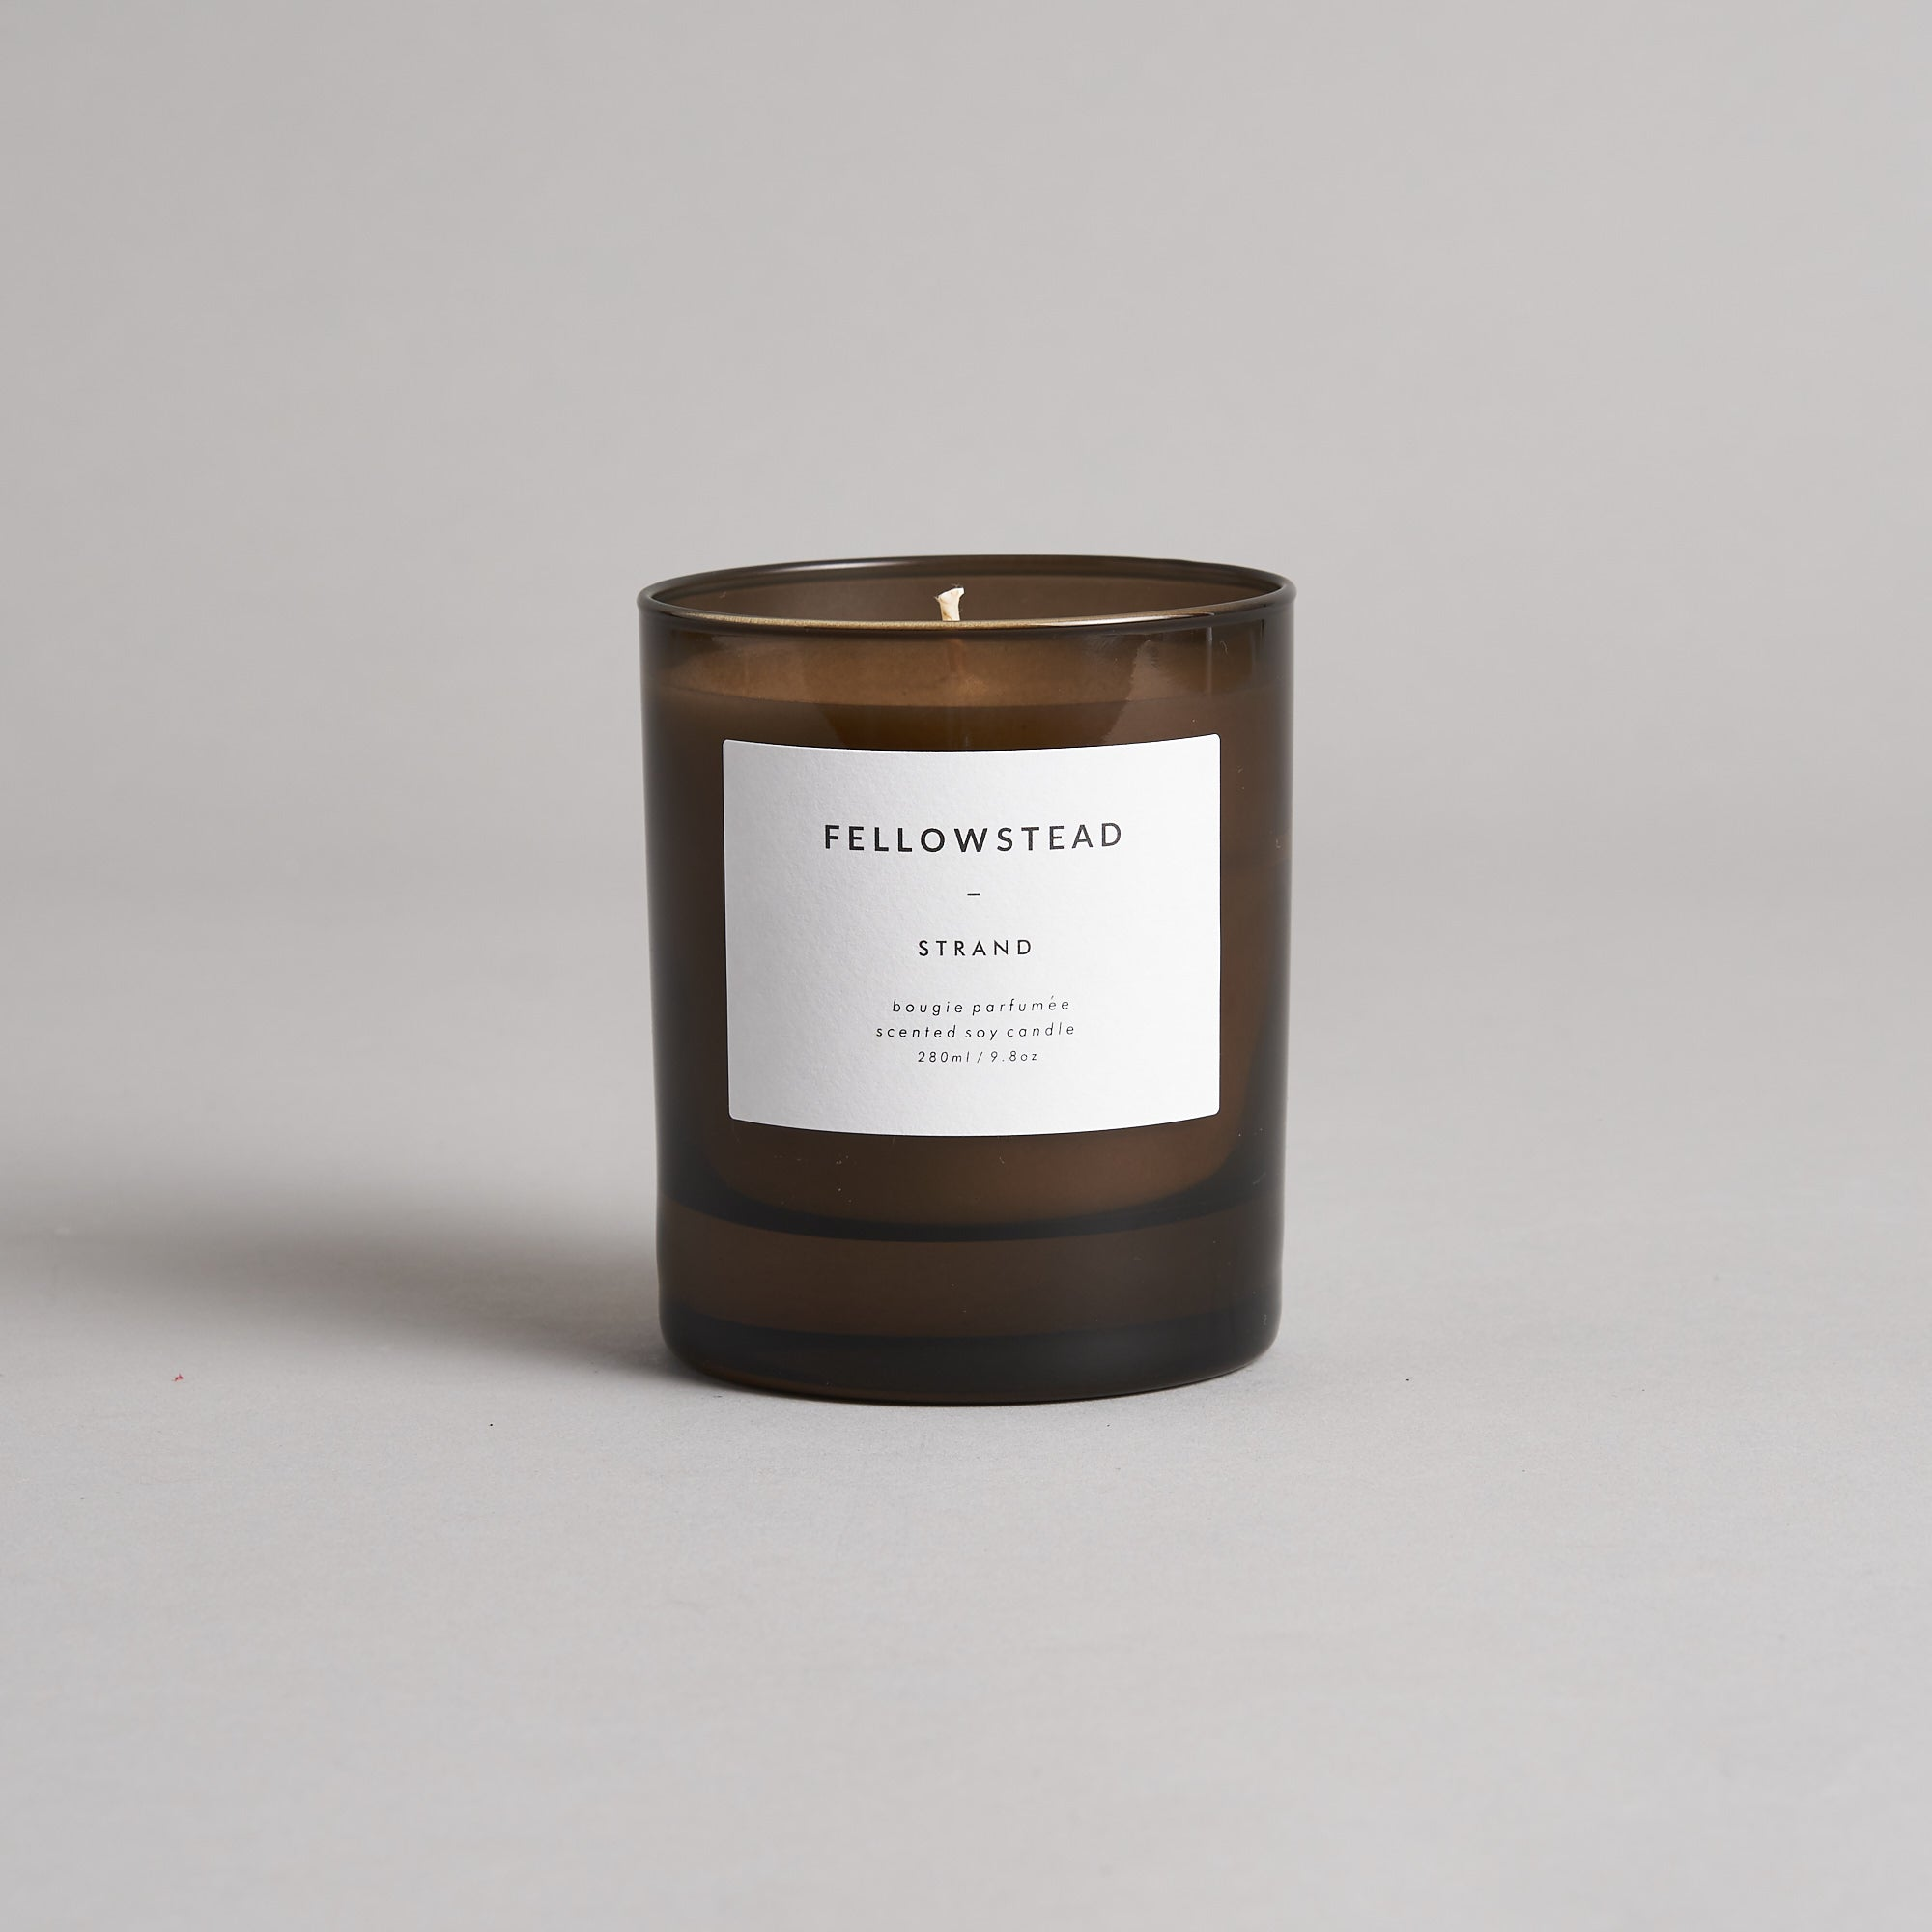 Strand Soy Candle by Fellowstead